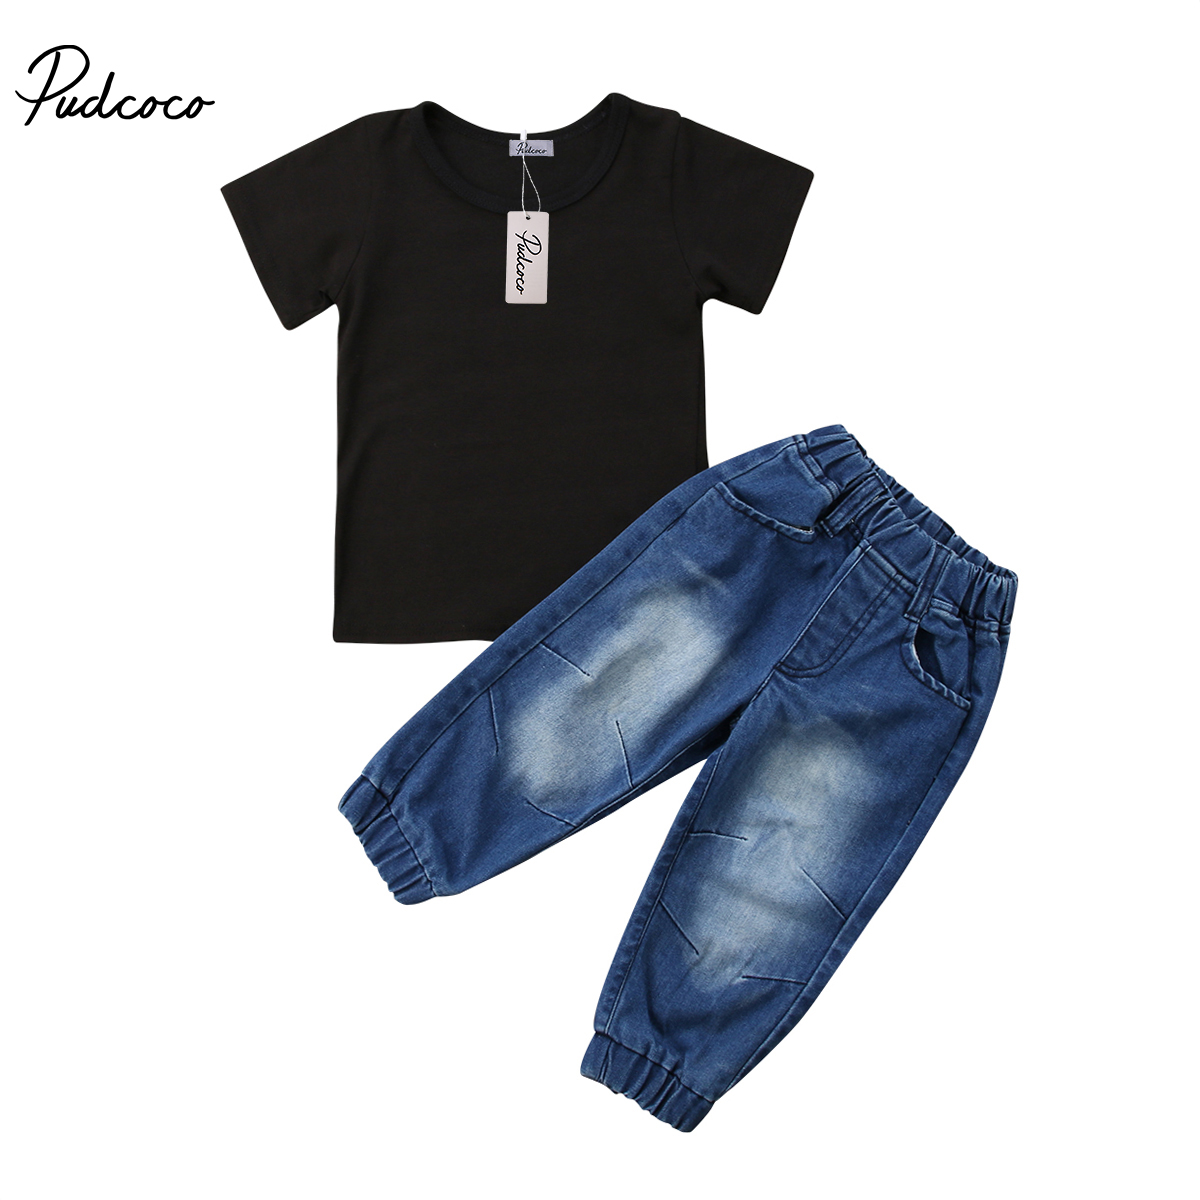 Pudcoco Newborn Kids Baby Boys Clothes Cotton Short Sleeve O-Neck T-shirt Denim Pants Leggings Jeans Outfits 1-6 Years Helen115